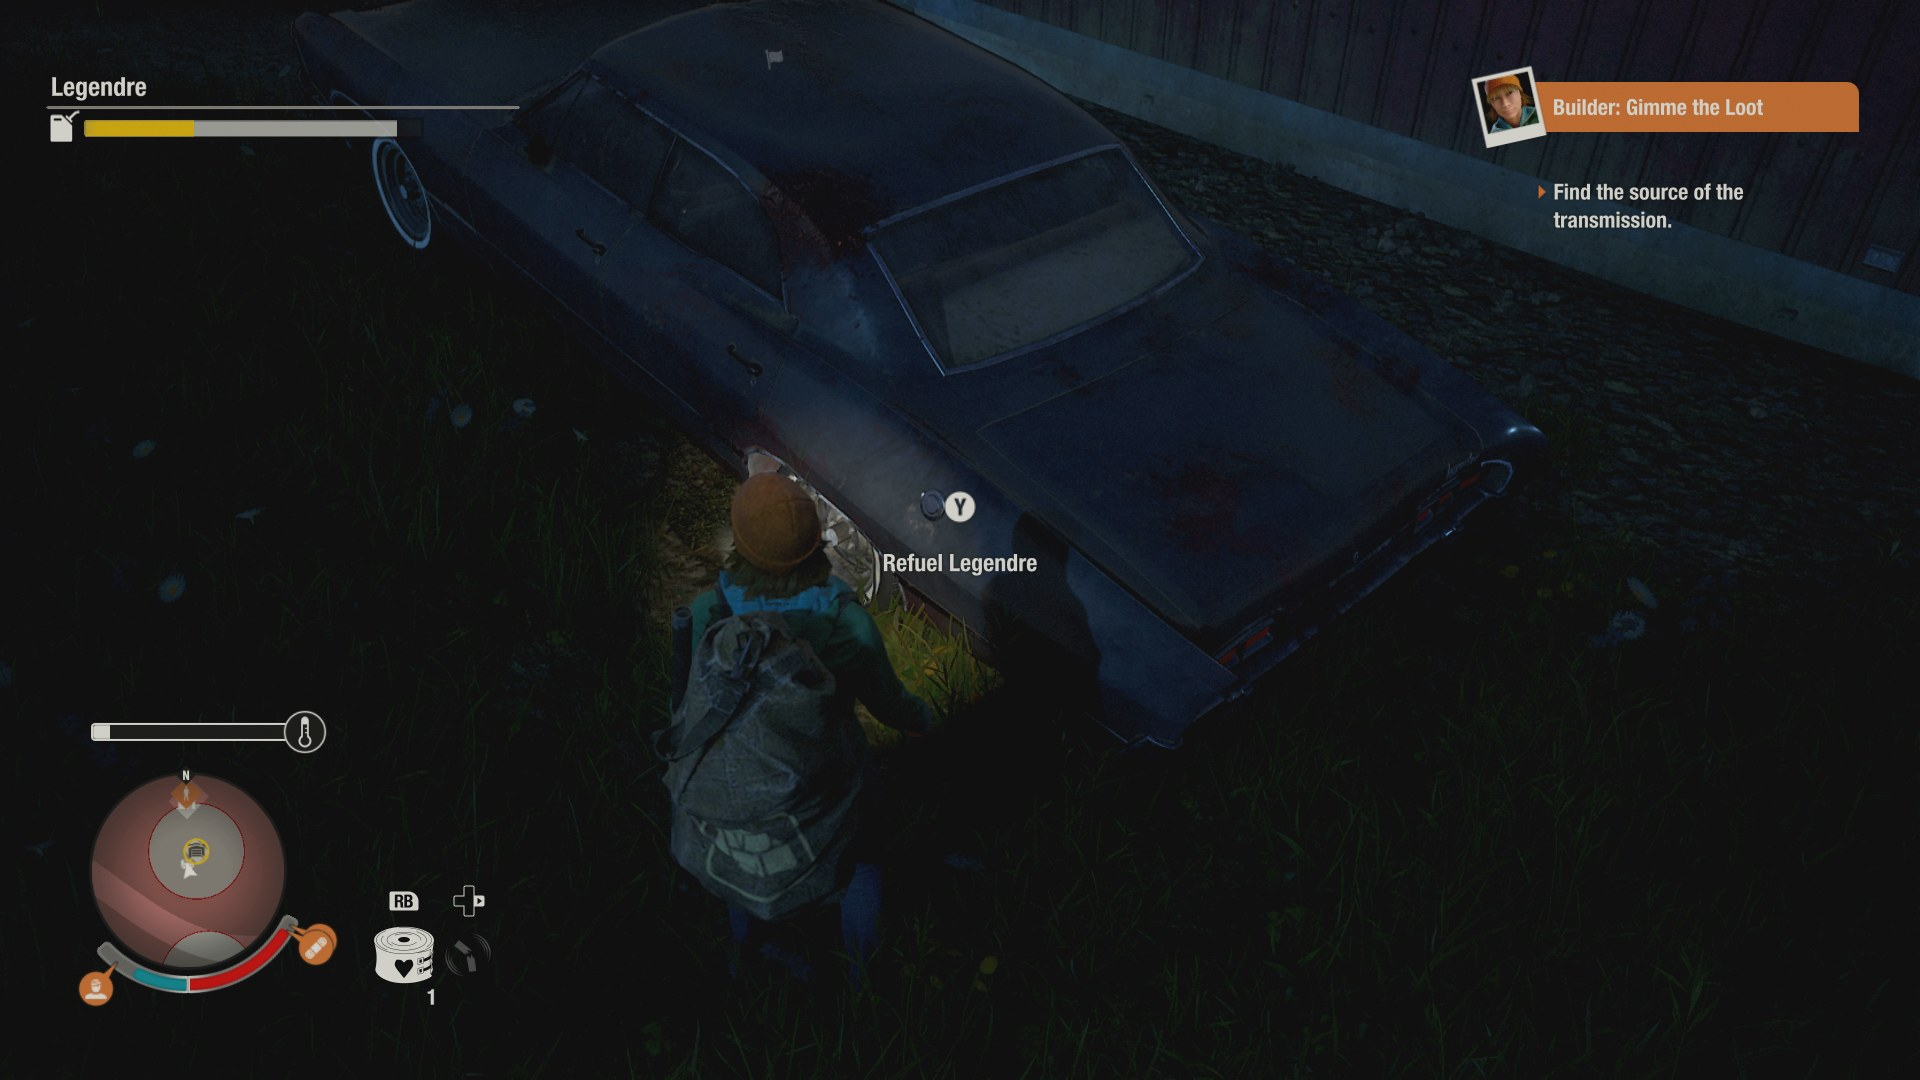 State of Decay 2 Vehicles Guide - How to Refuel and Repair